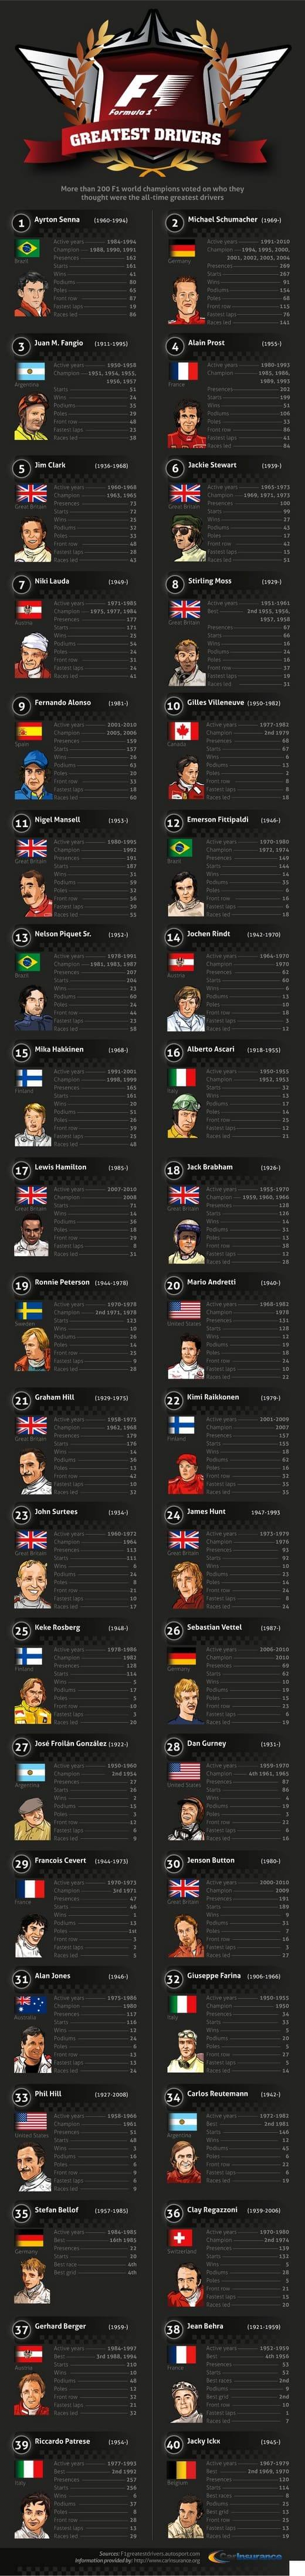 F1GreatestDrivers